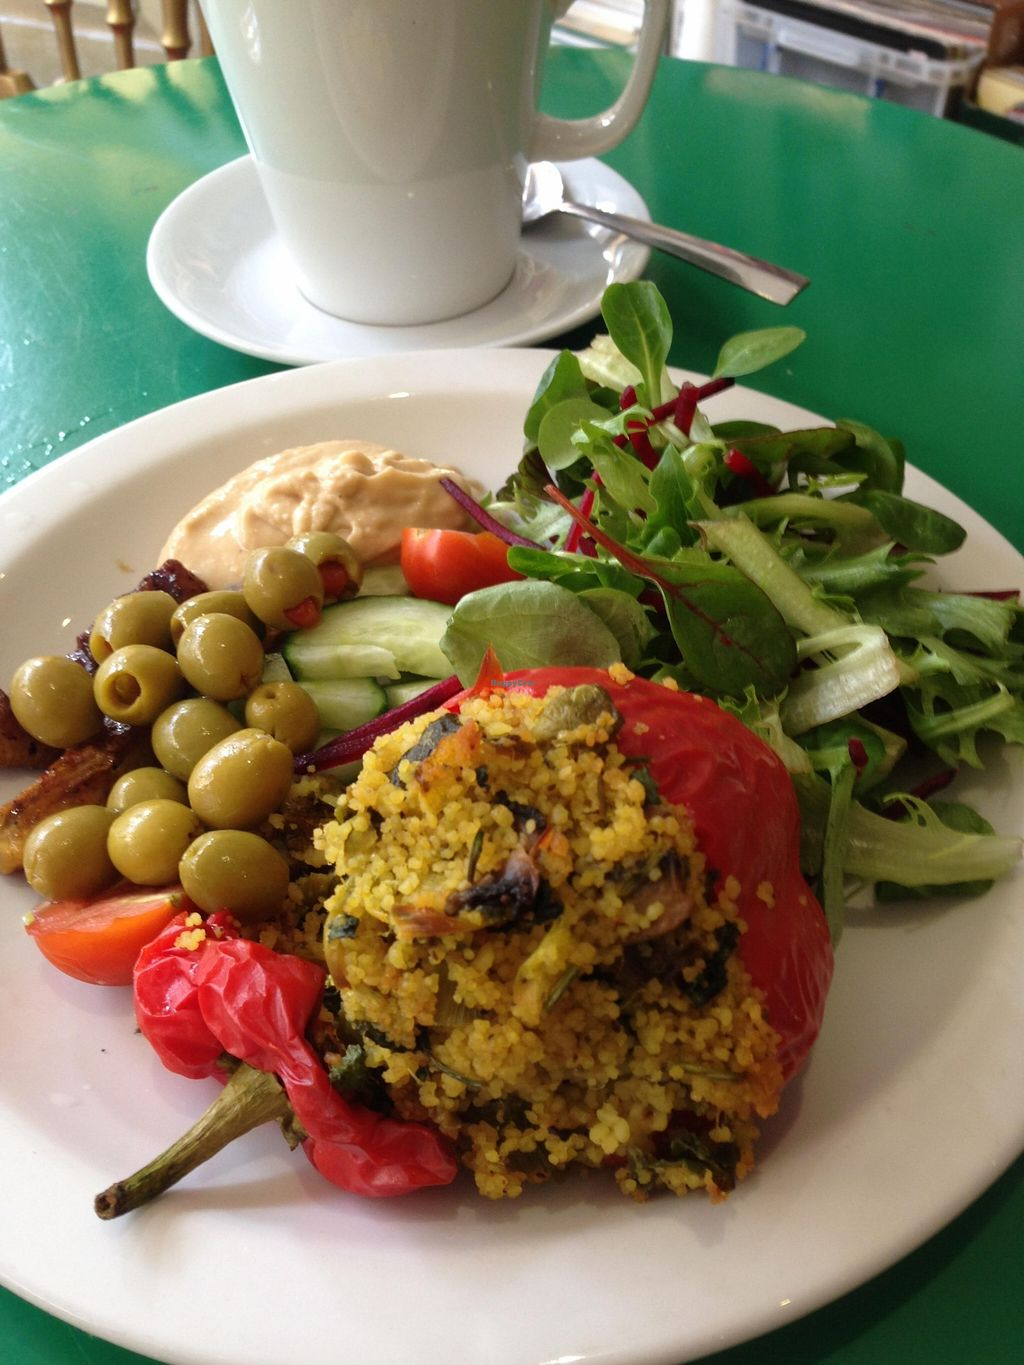 """Photo of Vinyl  by <a href=""""/members/profile/Clare"""">Clare</a> <br/>Vegan stuffed pepper and salad <br/> November 12, 2015  - <a href='/contact/abuse/image/65282/124755'>Report</a>"""